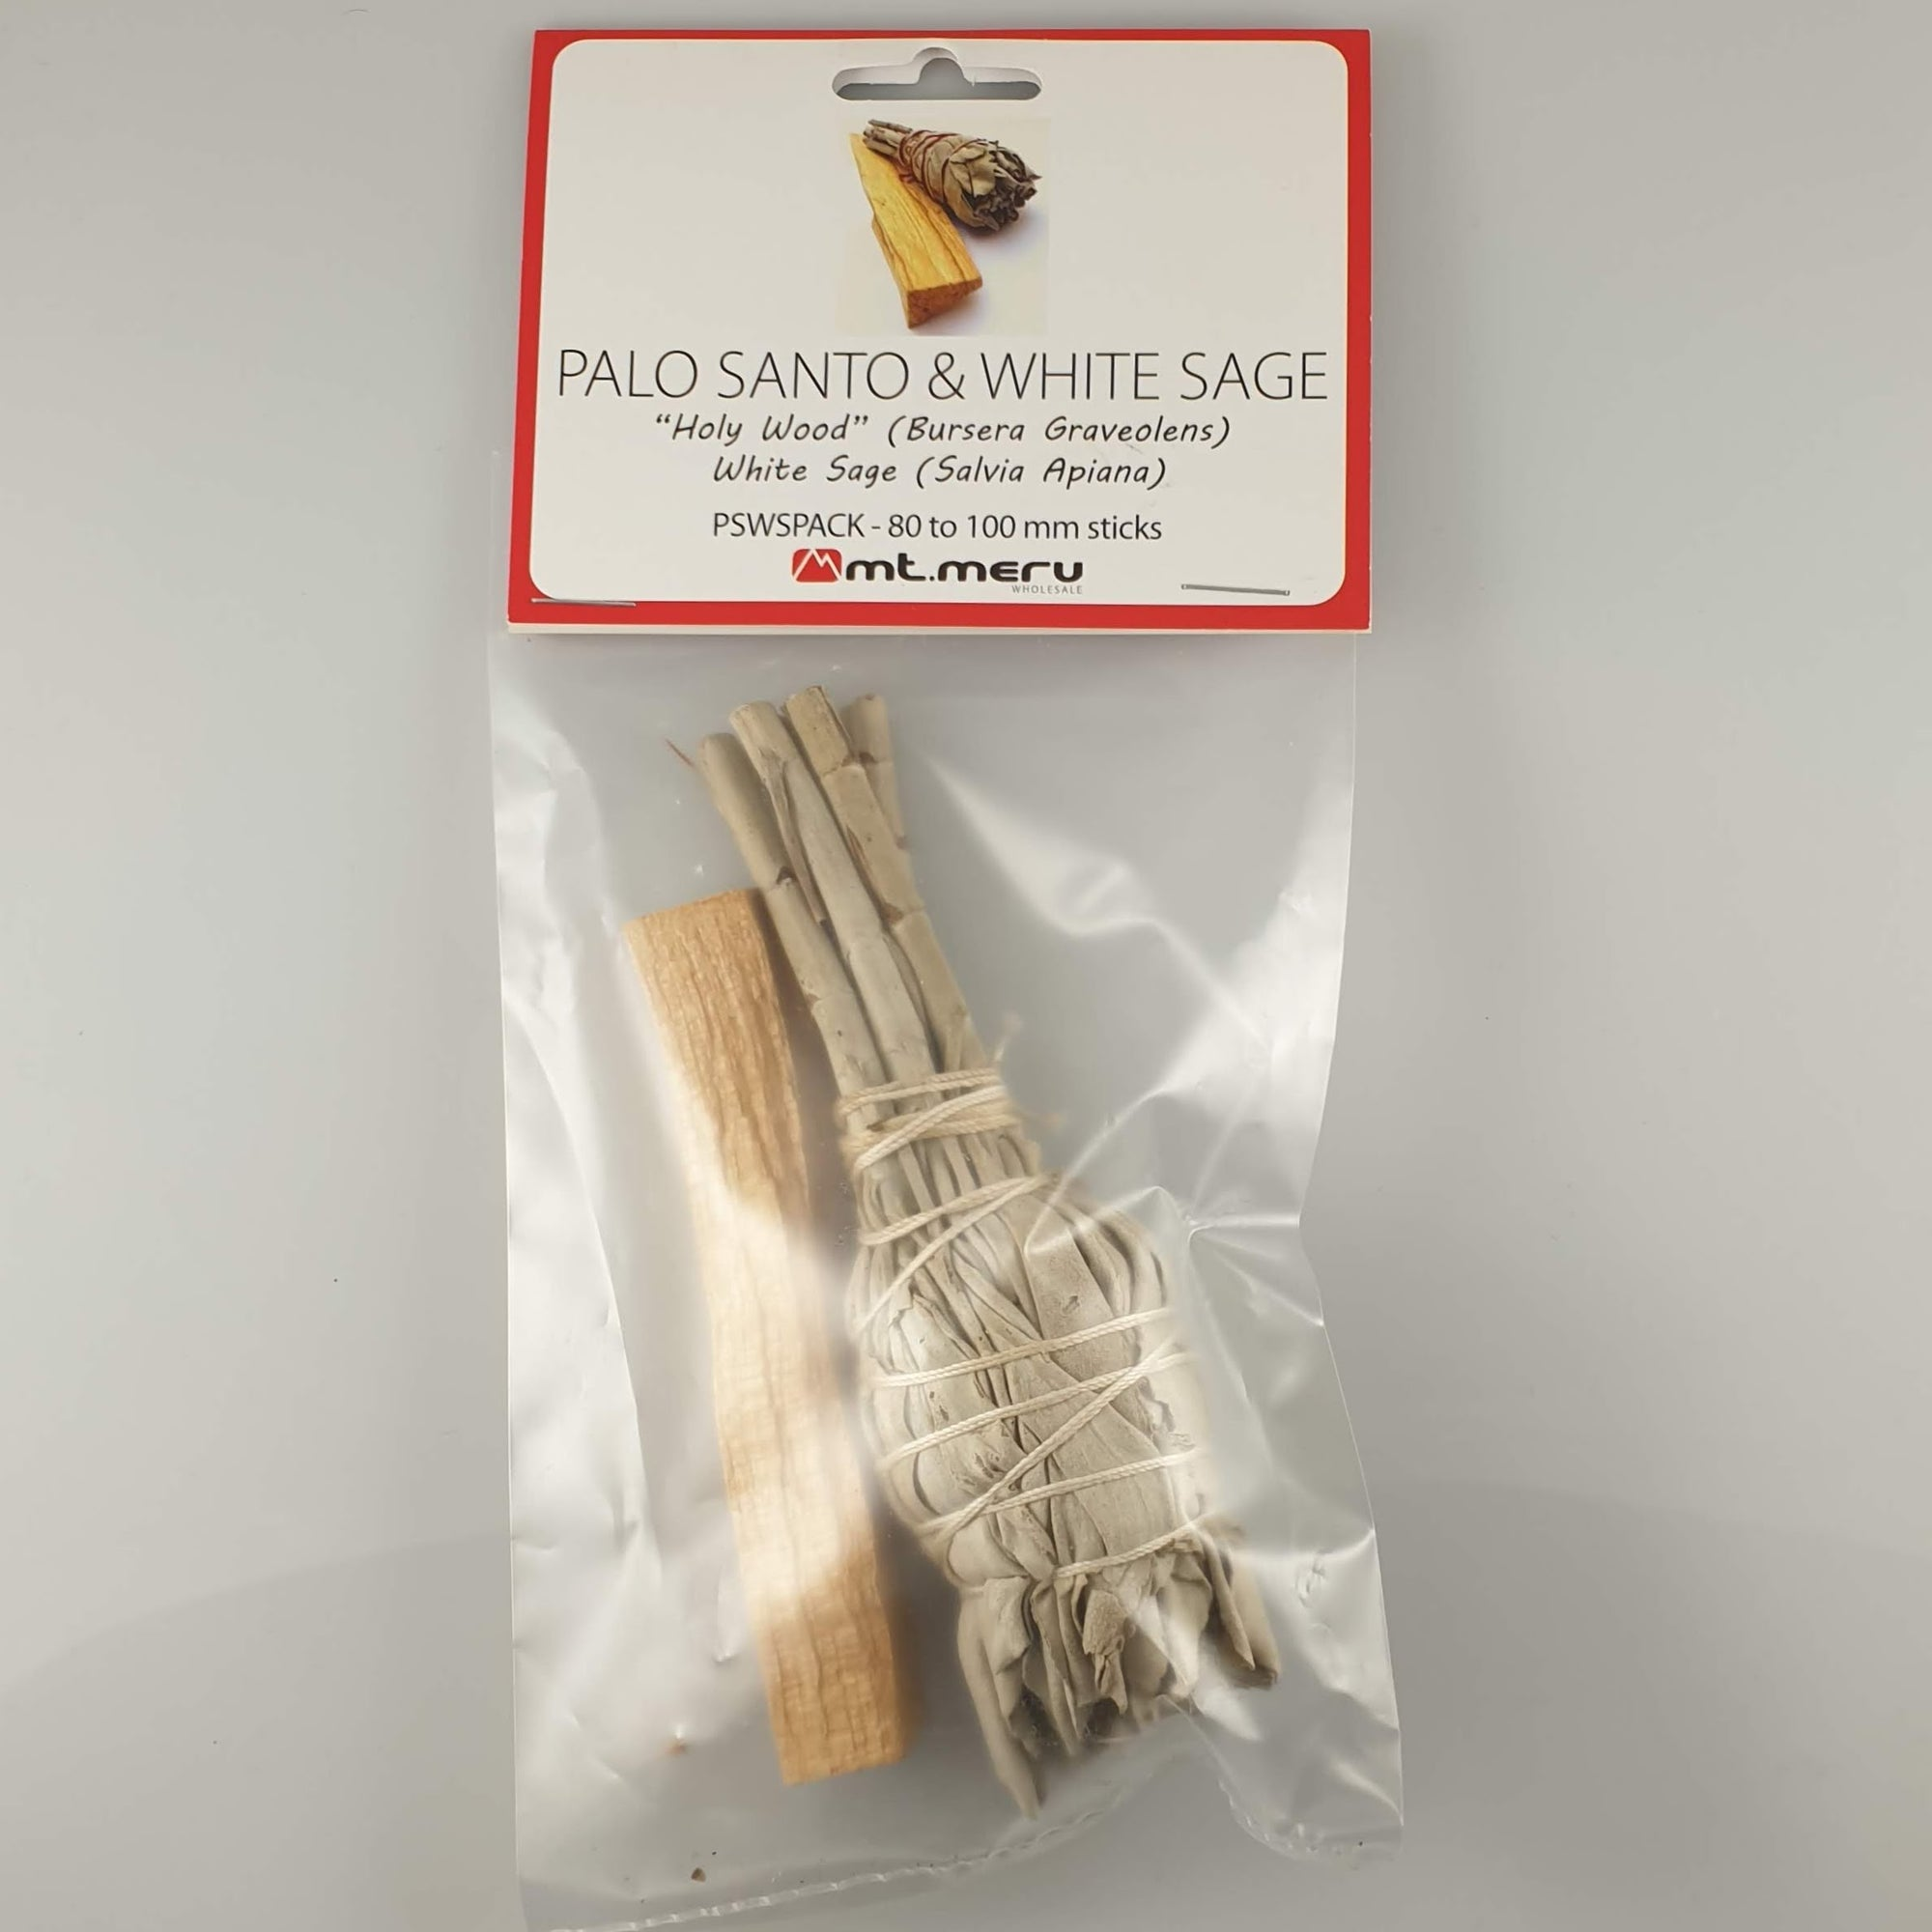 Palo Santo & White Sage Smudge Sticks - Rivendell Shop